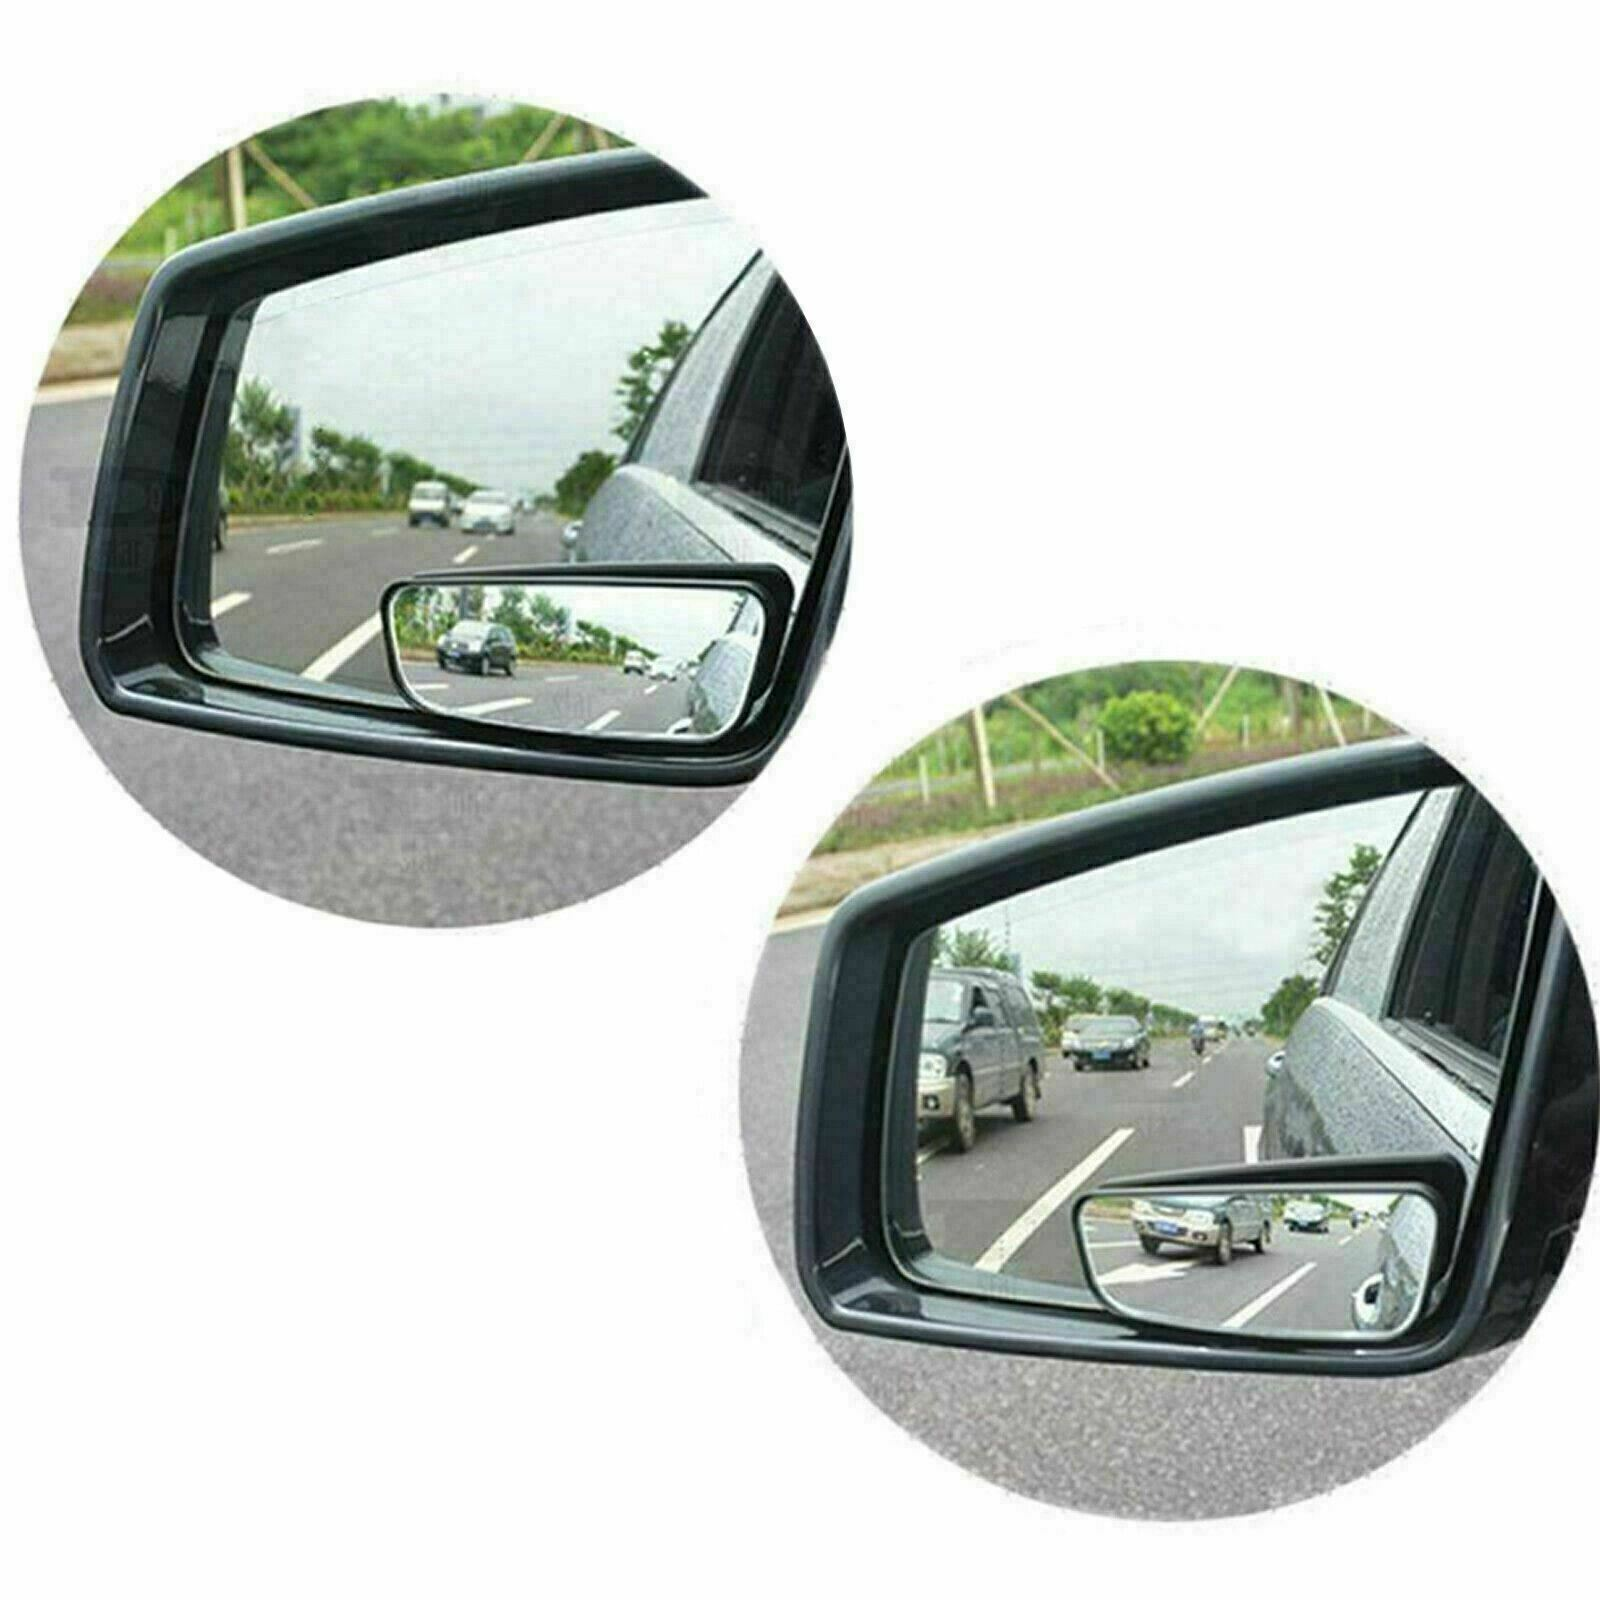 Universal Caravan Large Feld of View Mirror Modification Wing Side Mirror Extensions for Trailer,180X123Mm,1Xmirror 2X Universal Car Auxiliary Towing Mirrors